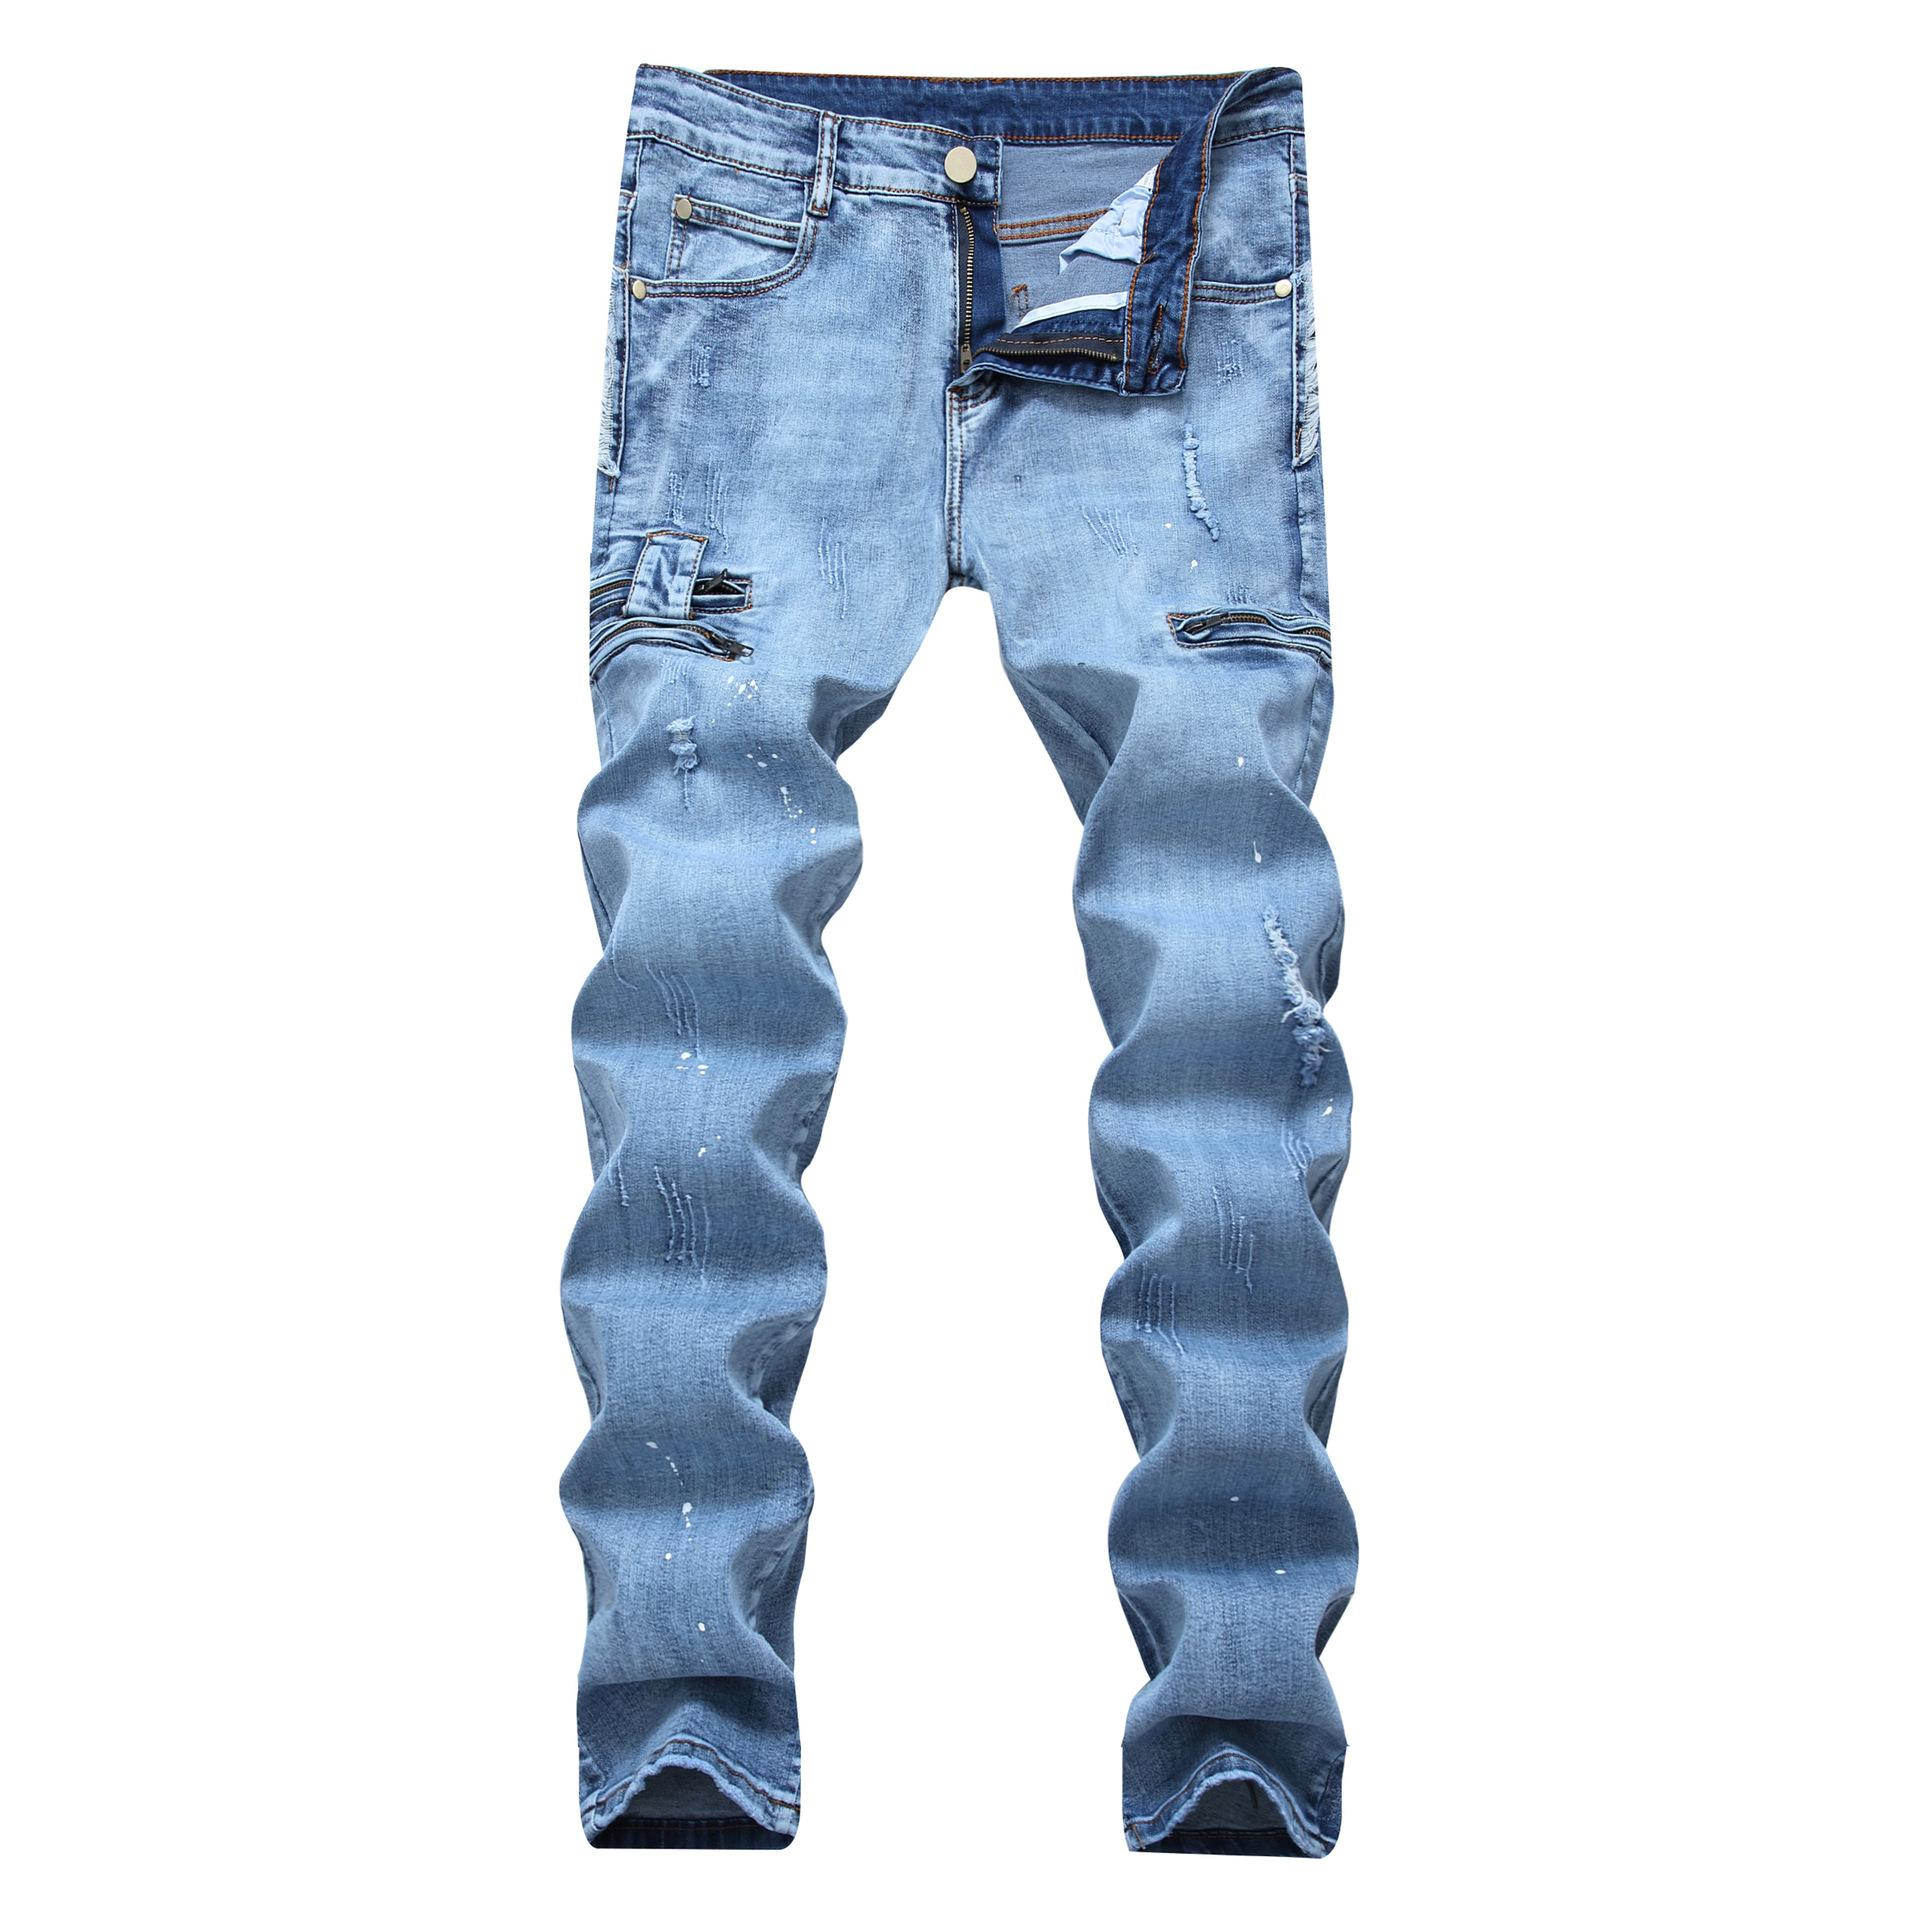 Designer Hole Jeans Zipper Stretch Skinny Jeans Hip Hop Streetwear Jeans Fashion Pants Light Blue Casual Trousers